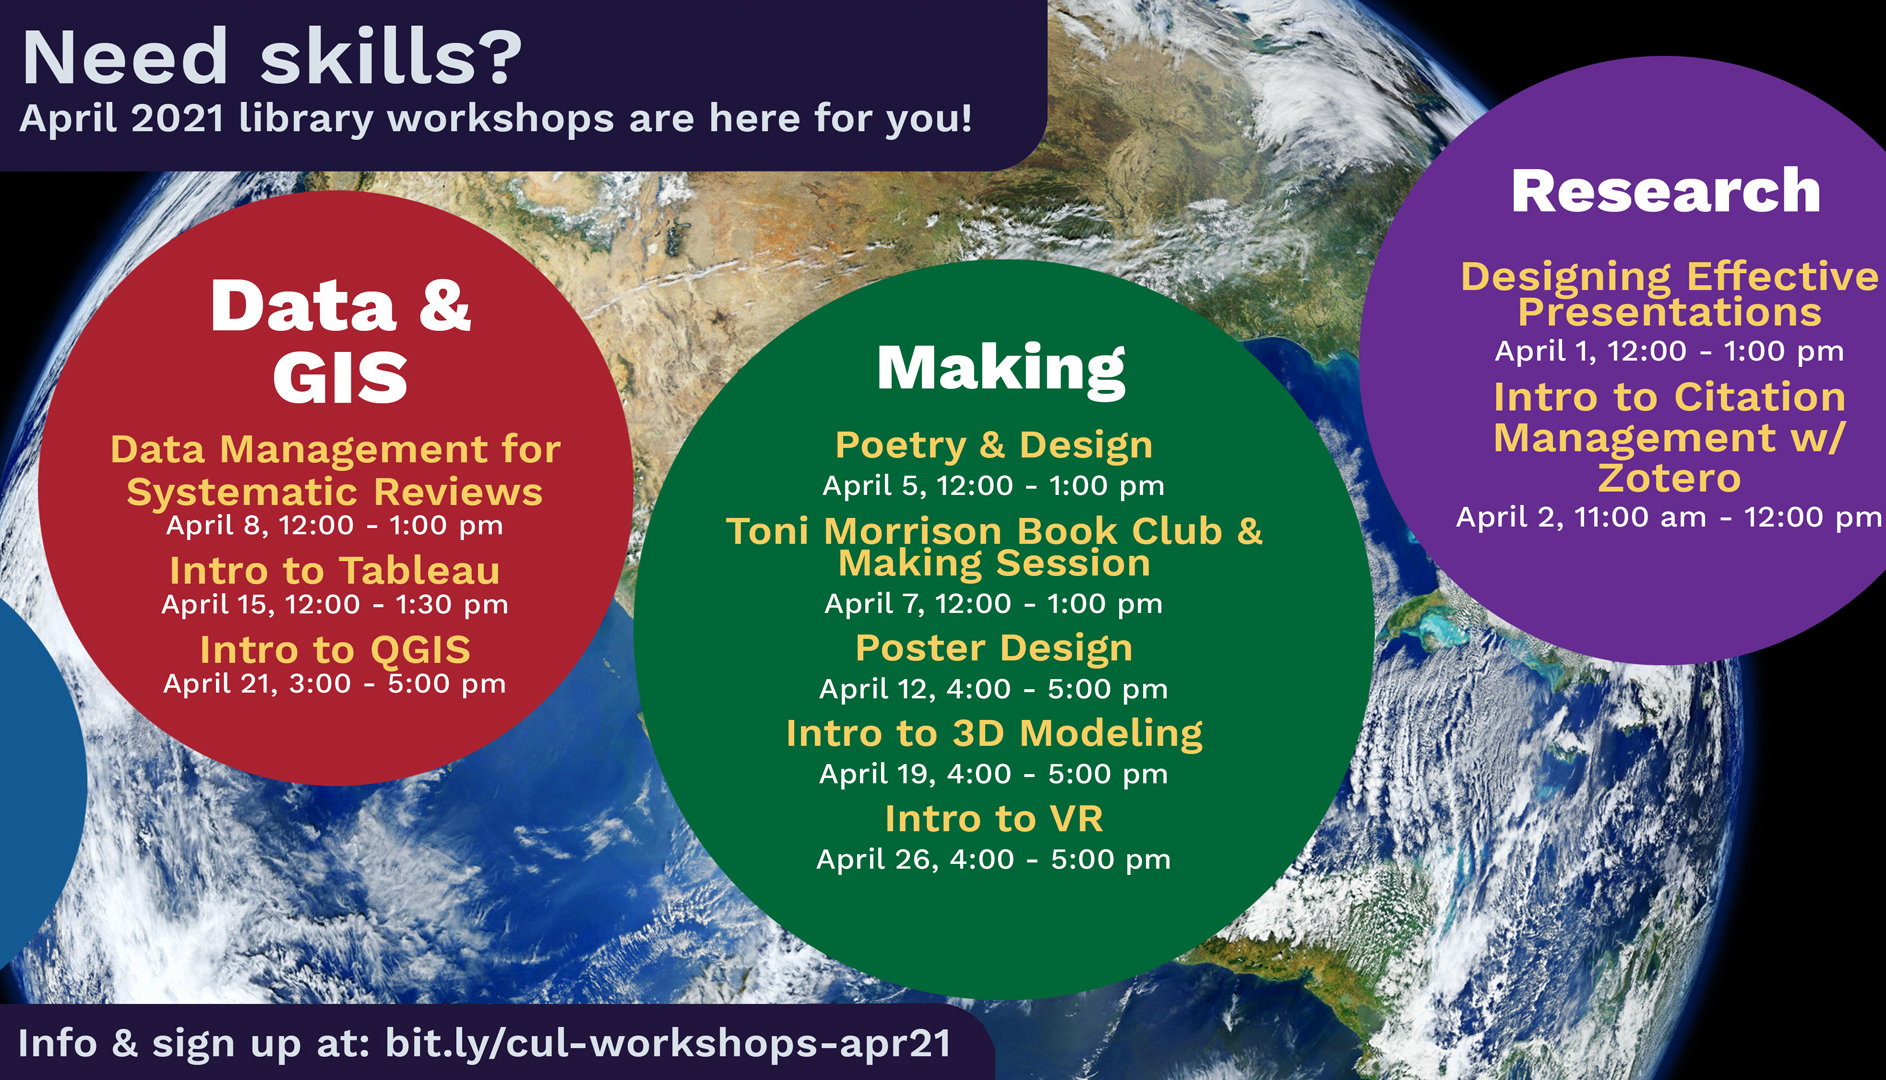 slide with information on upcoming workshops in April